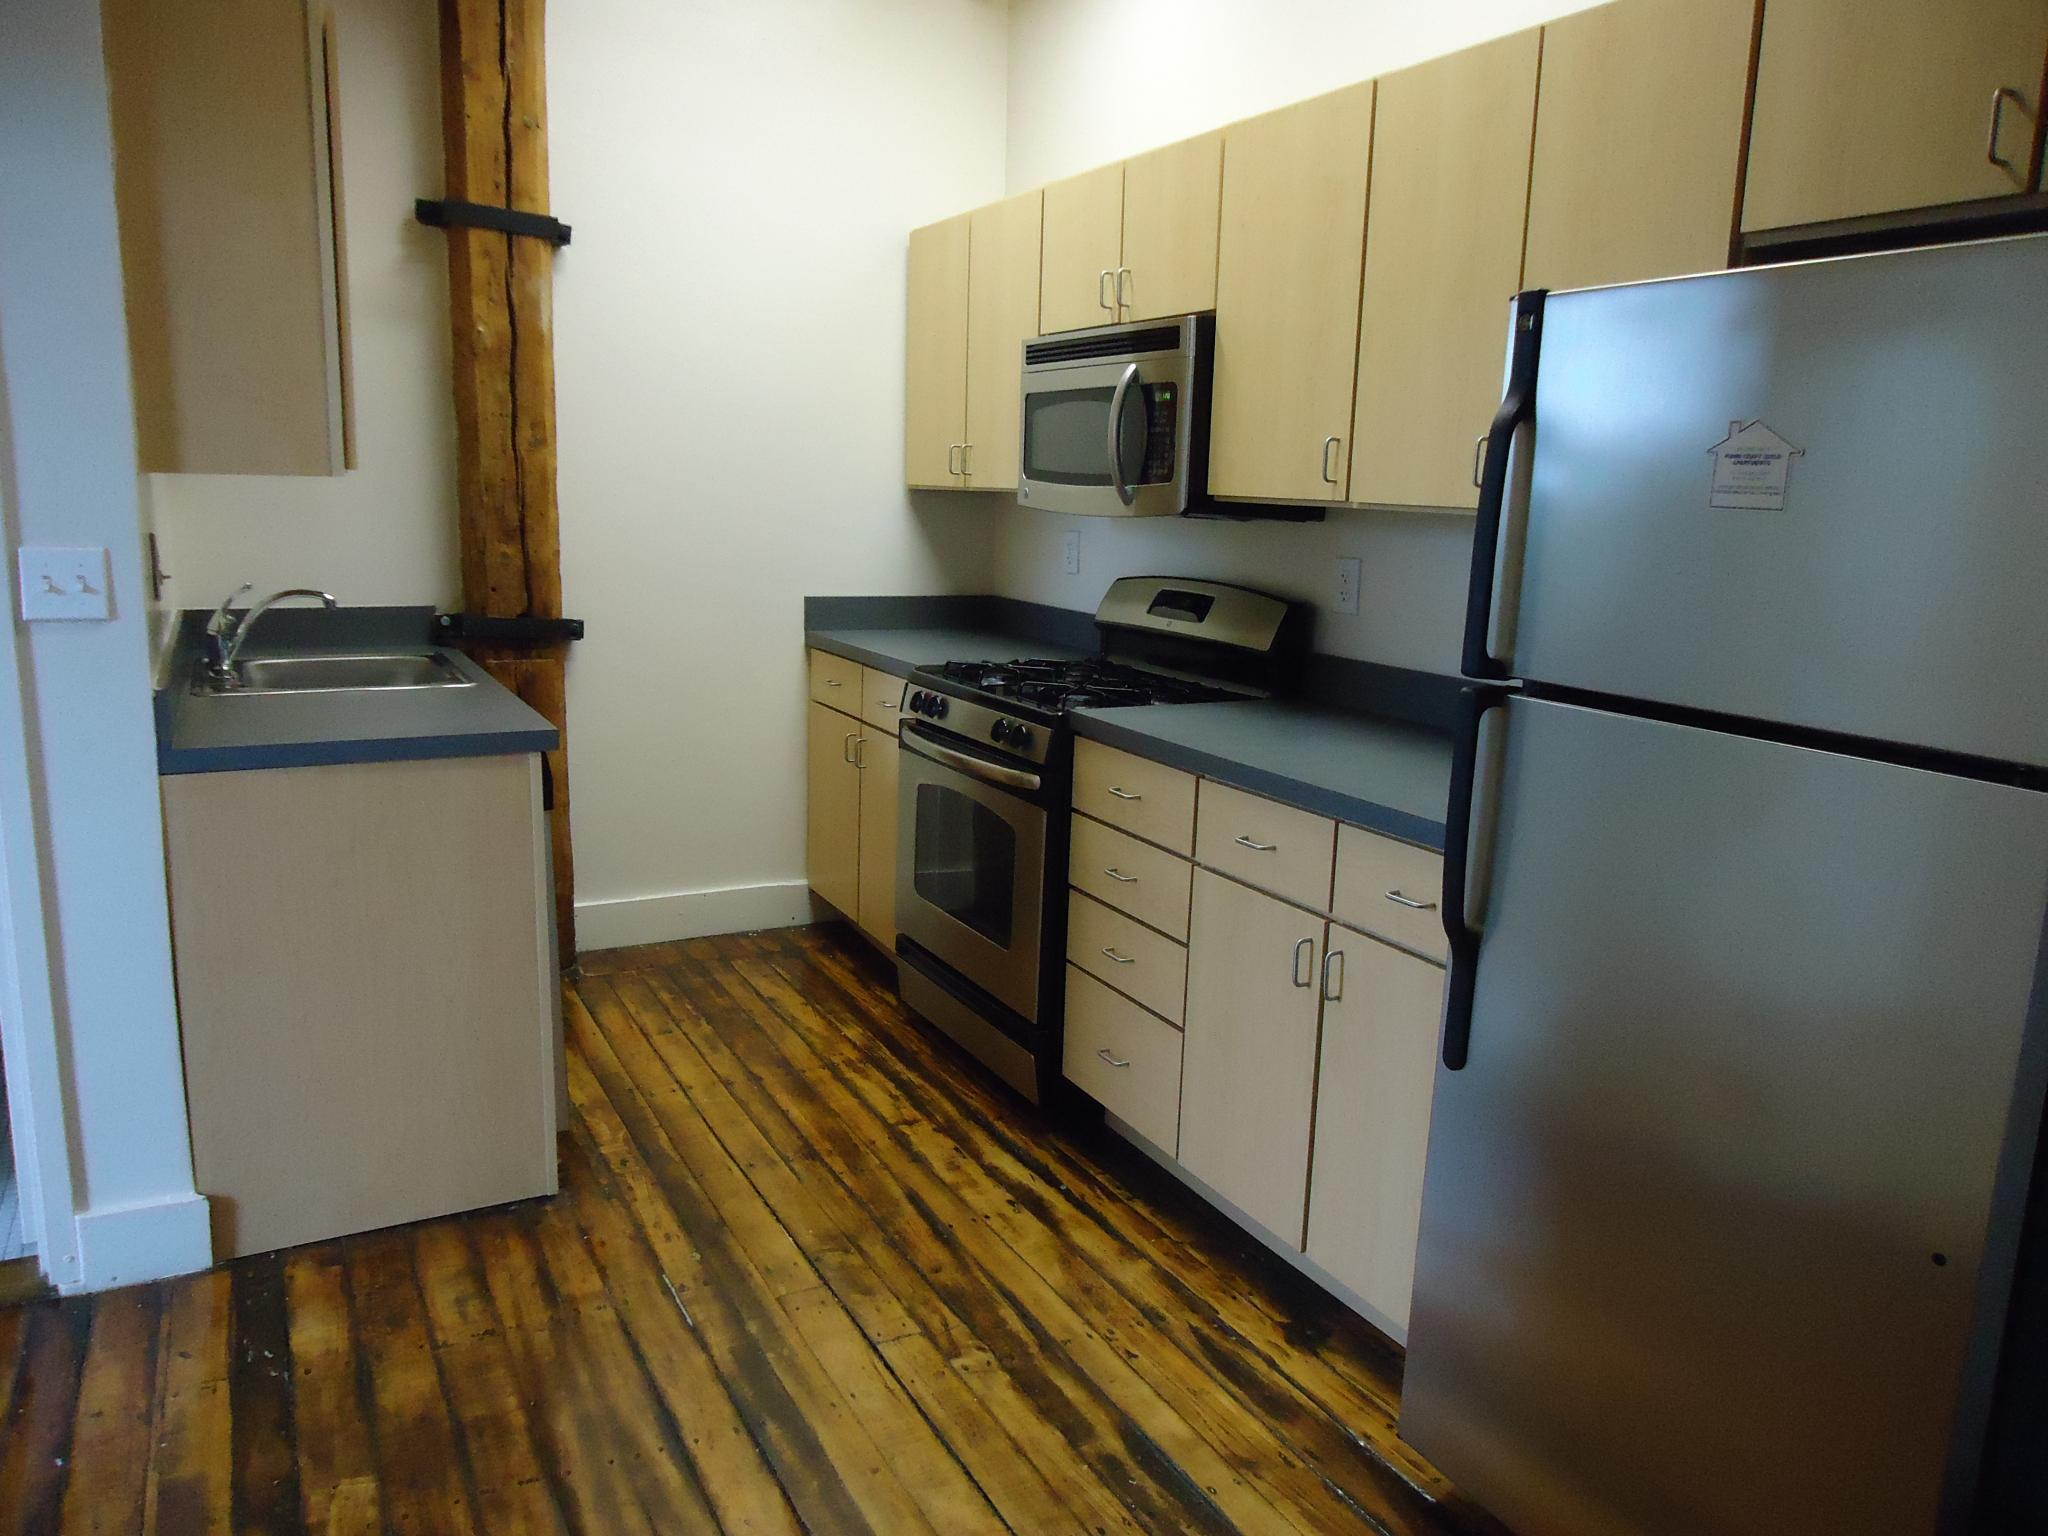 2 Bd on , Hardwood Floors, Loft, Disposal, Concierge Services, STUDY W